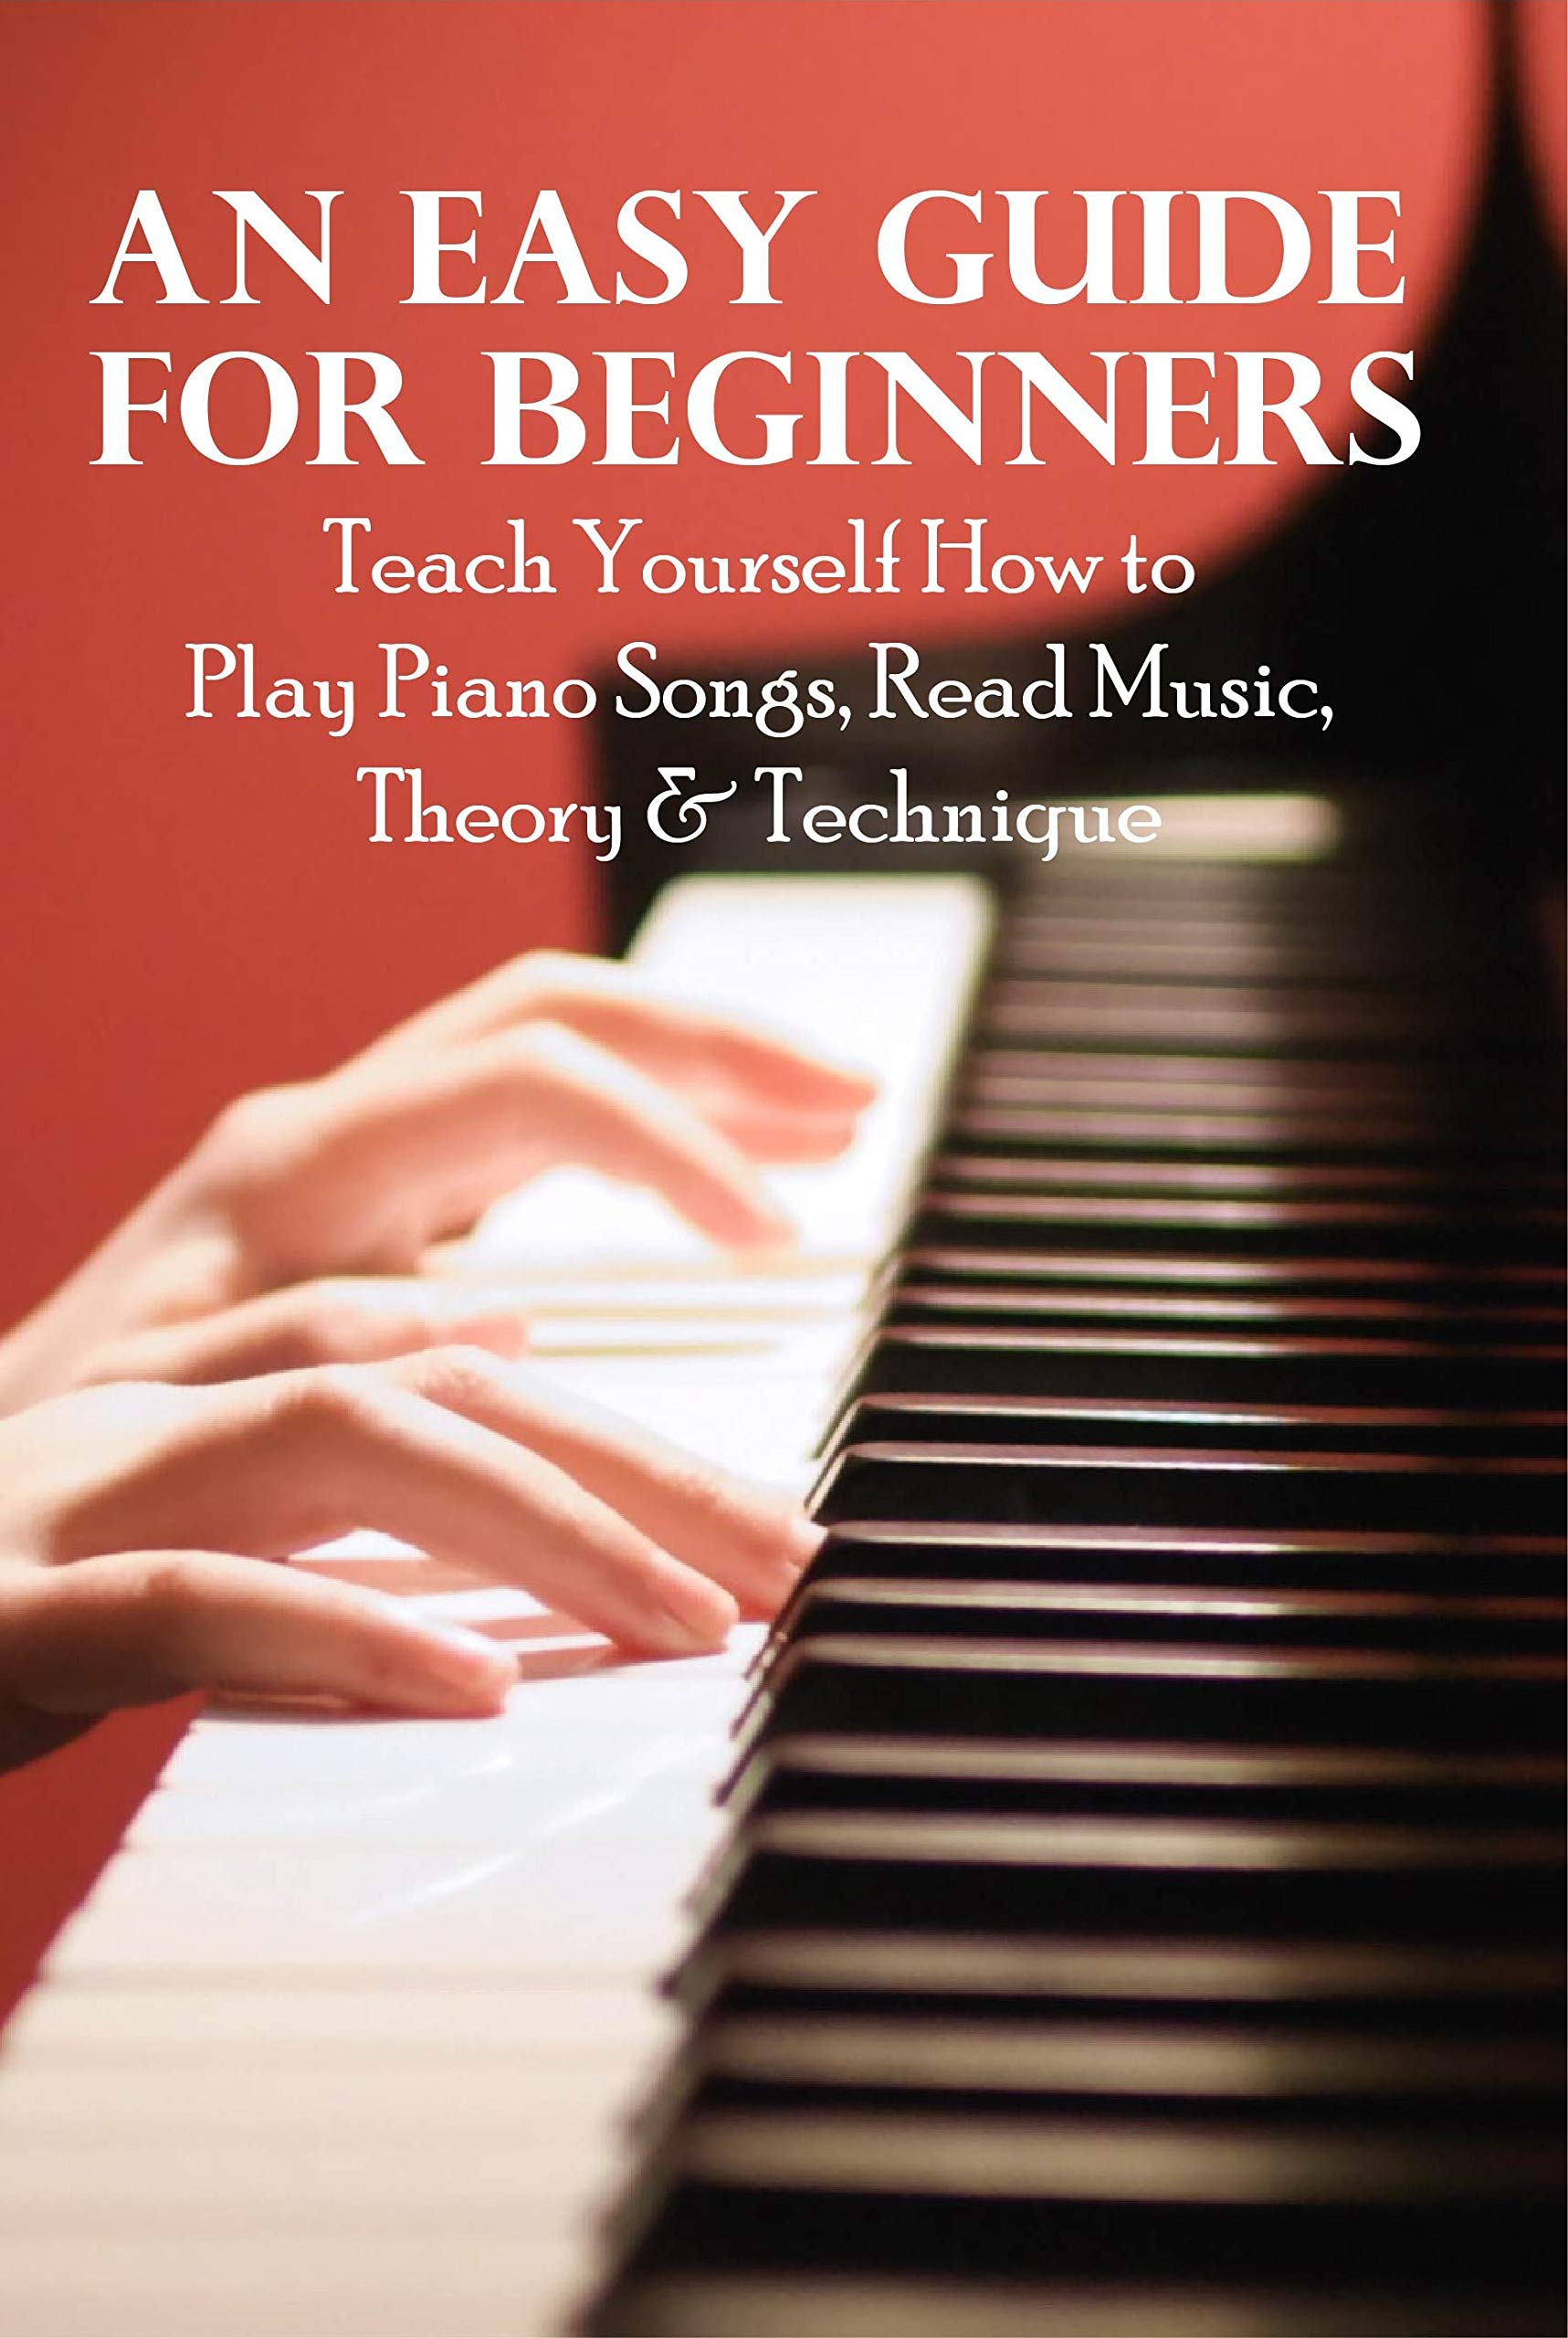 An Easy Guide For Beginners: Teach Yourself How to Play Piano Songs, Read Music, Theory & Technique: How To Play Keyboard Songs